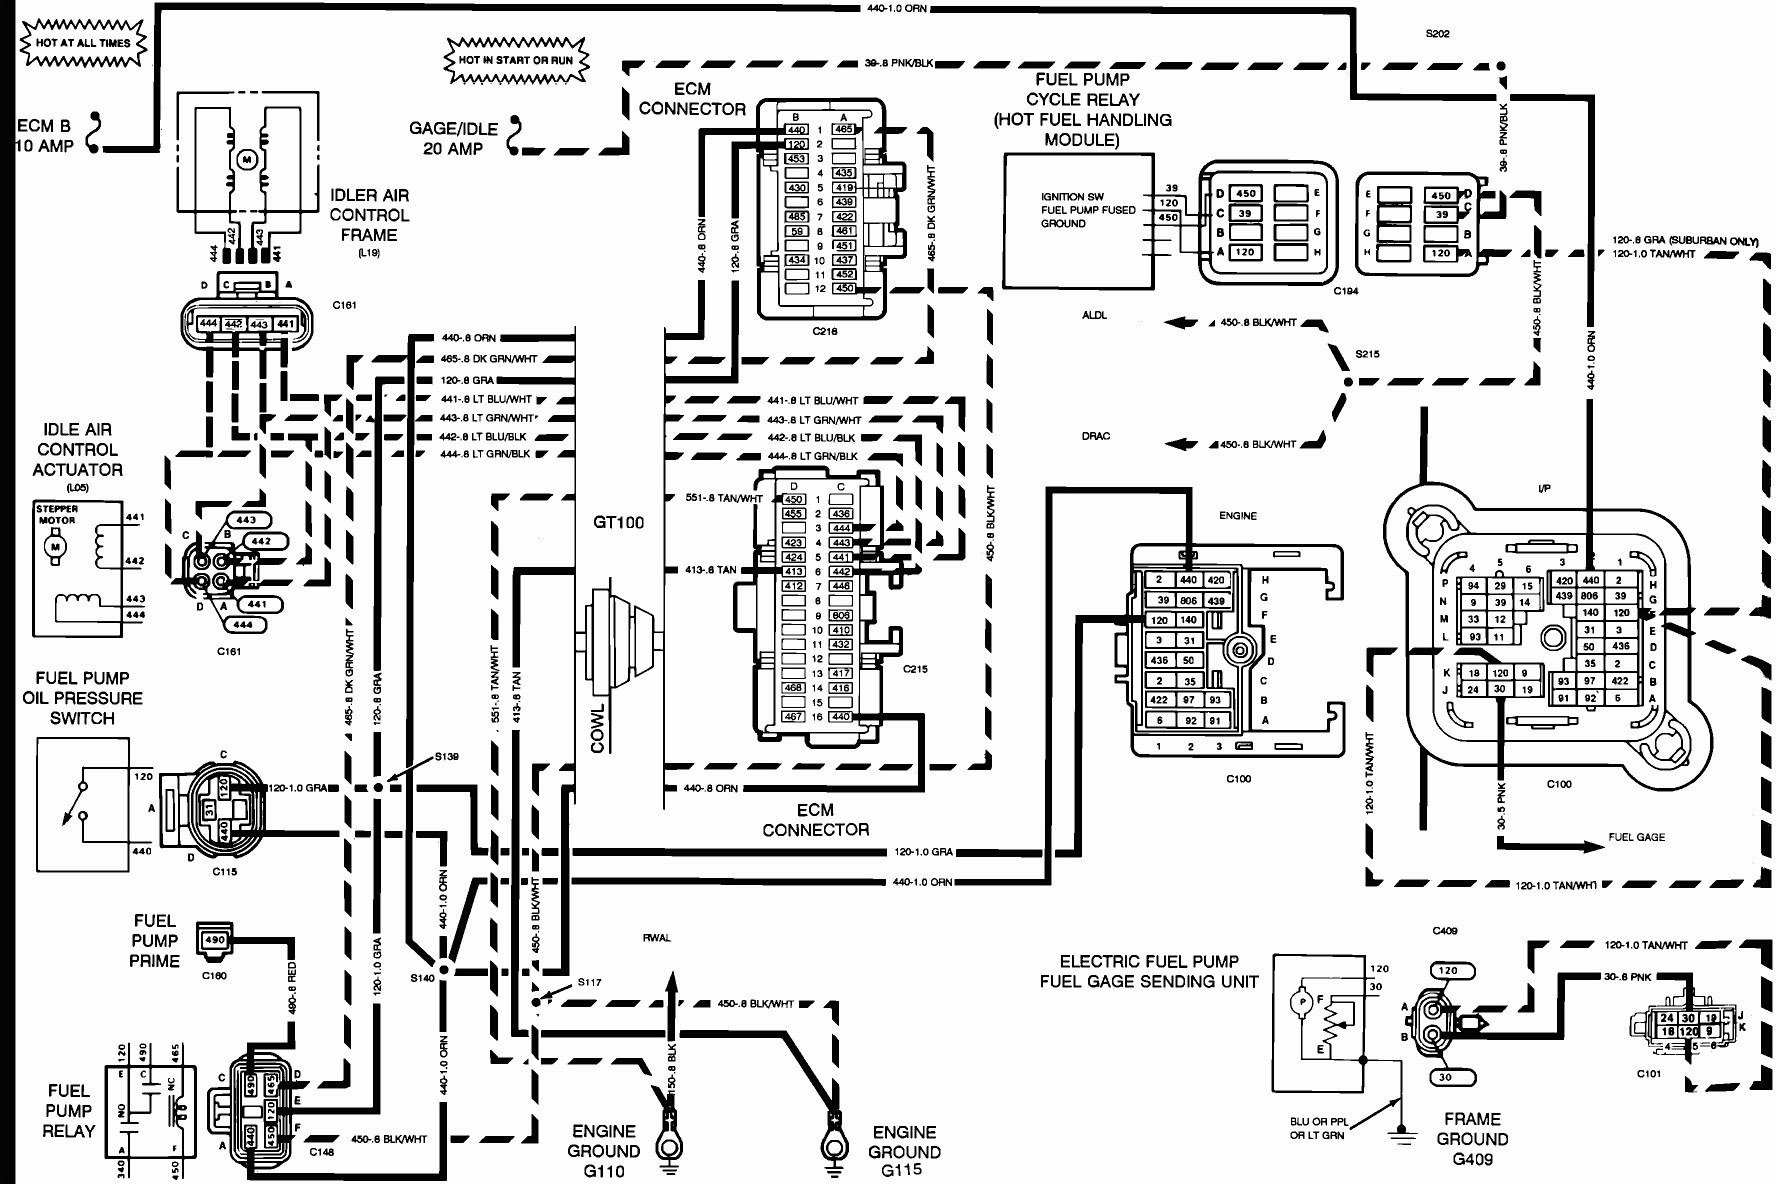 [WRG-3124] Newmar Dutch Star Wiring Diagram